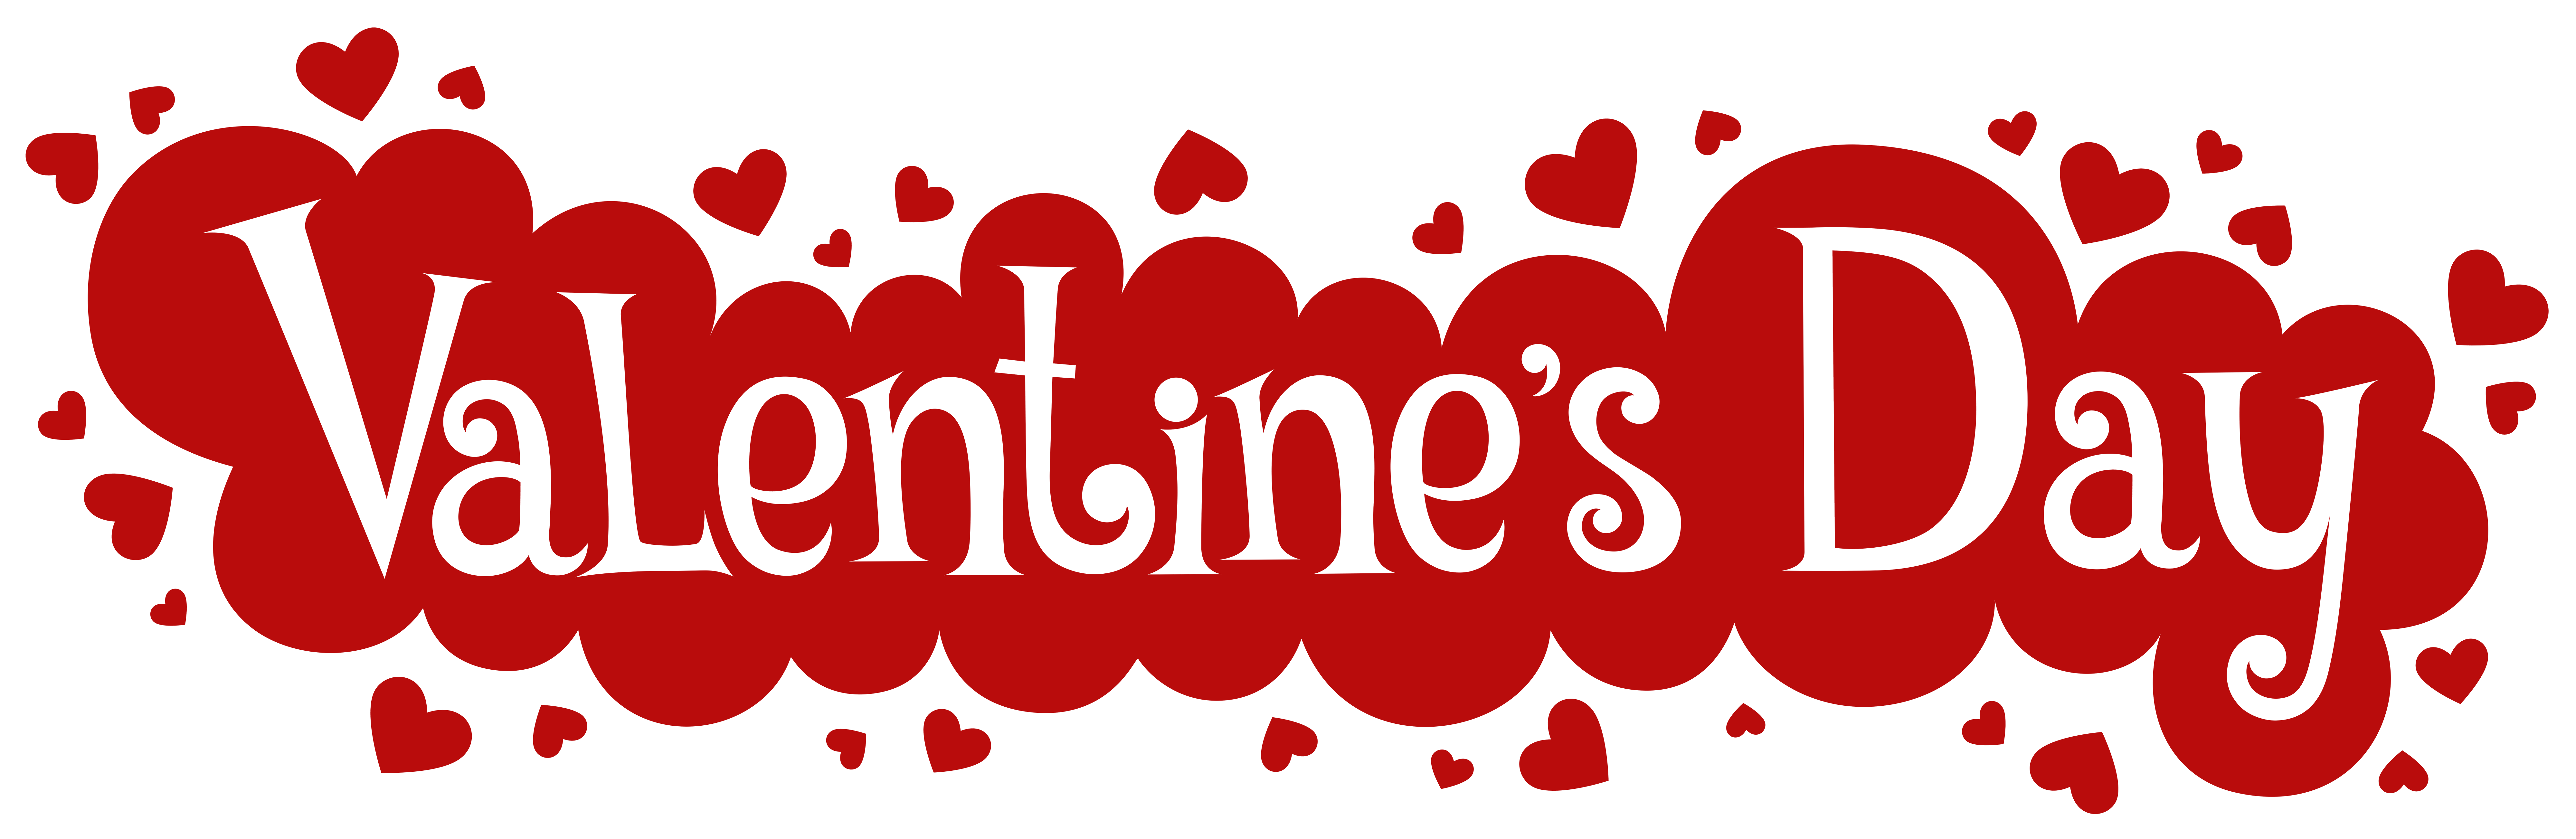 Valentines Day Clipart Png & Free Valentines Day Clipart.png.